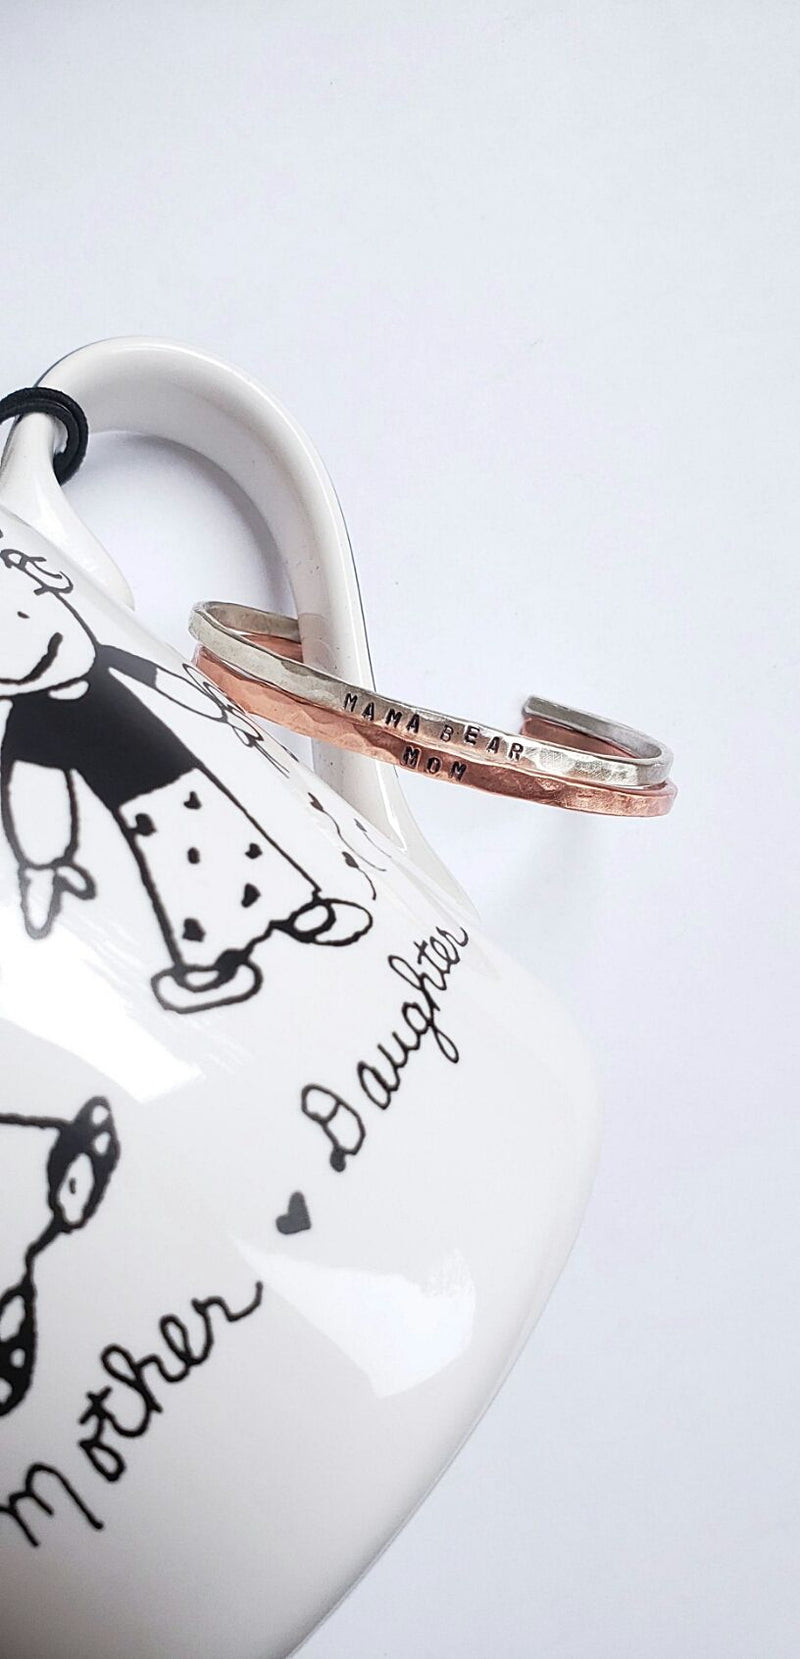 "2 bracelets hanging from a Mother's Day mug. 1 argentium sterling silver bracelet which says ""mama bear"" and 1 copper bracelet says ""mom"""